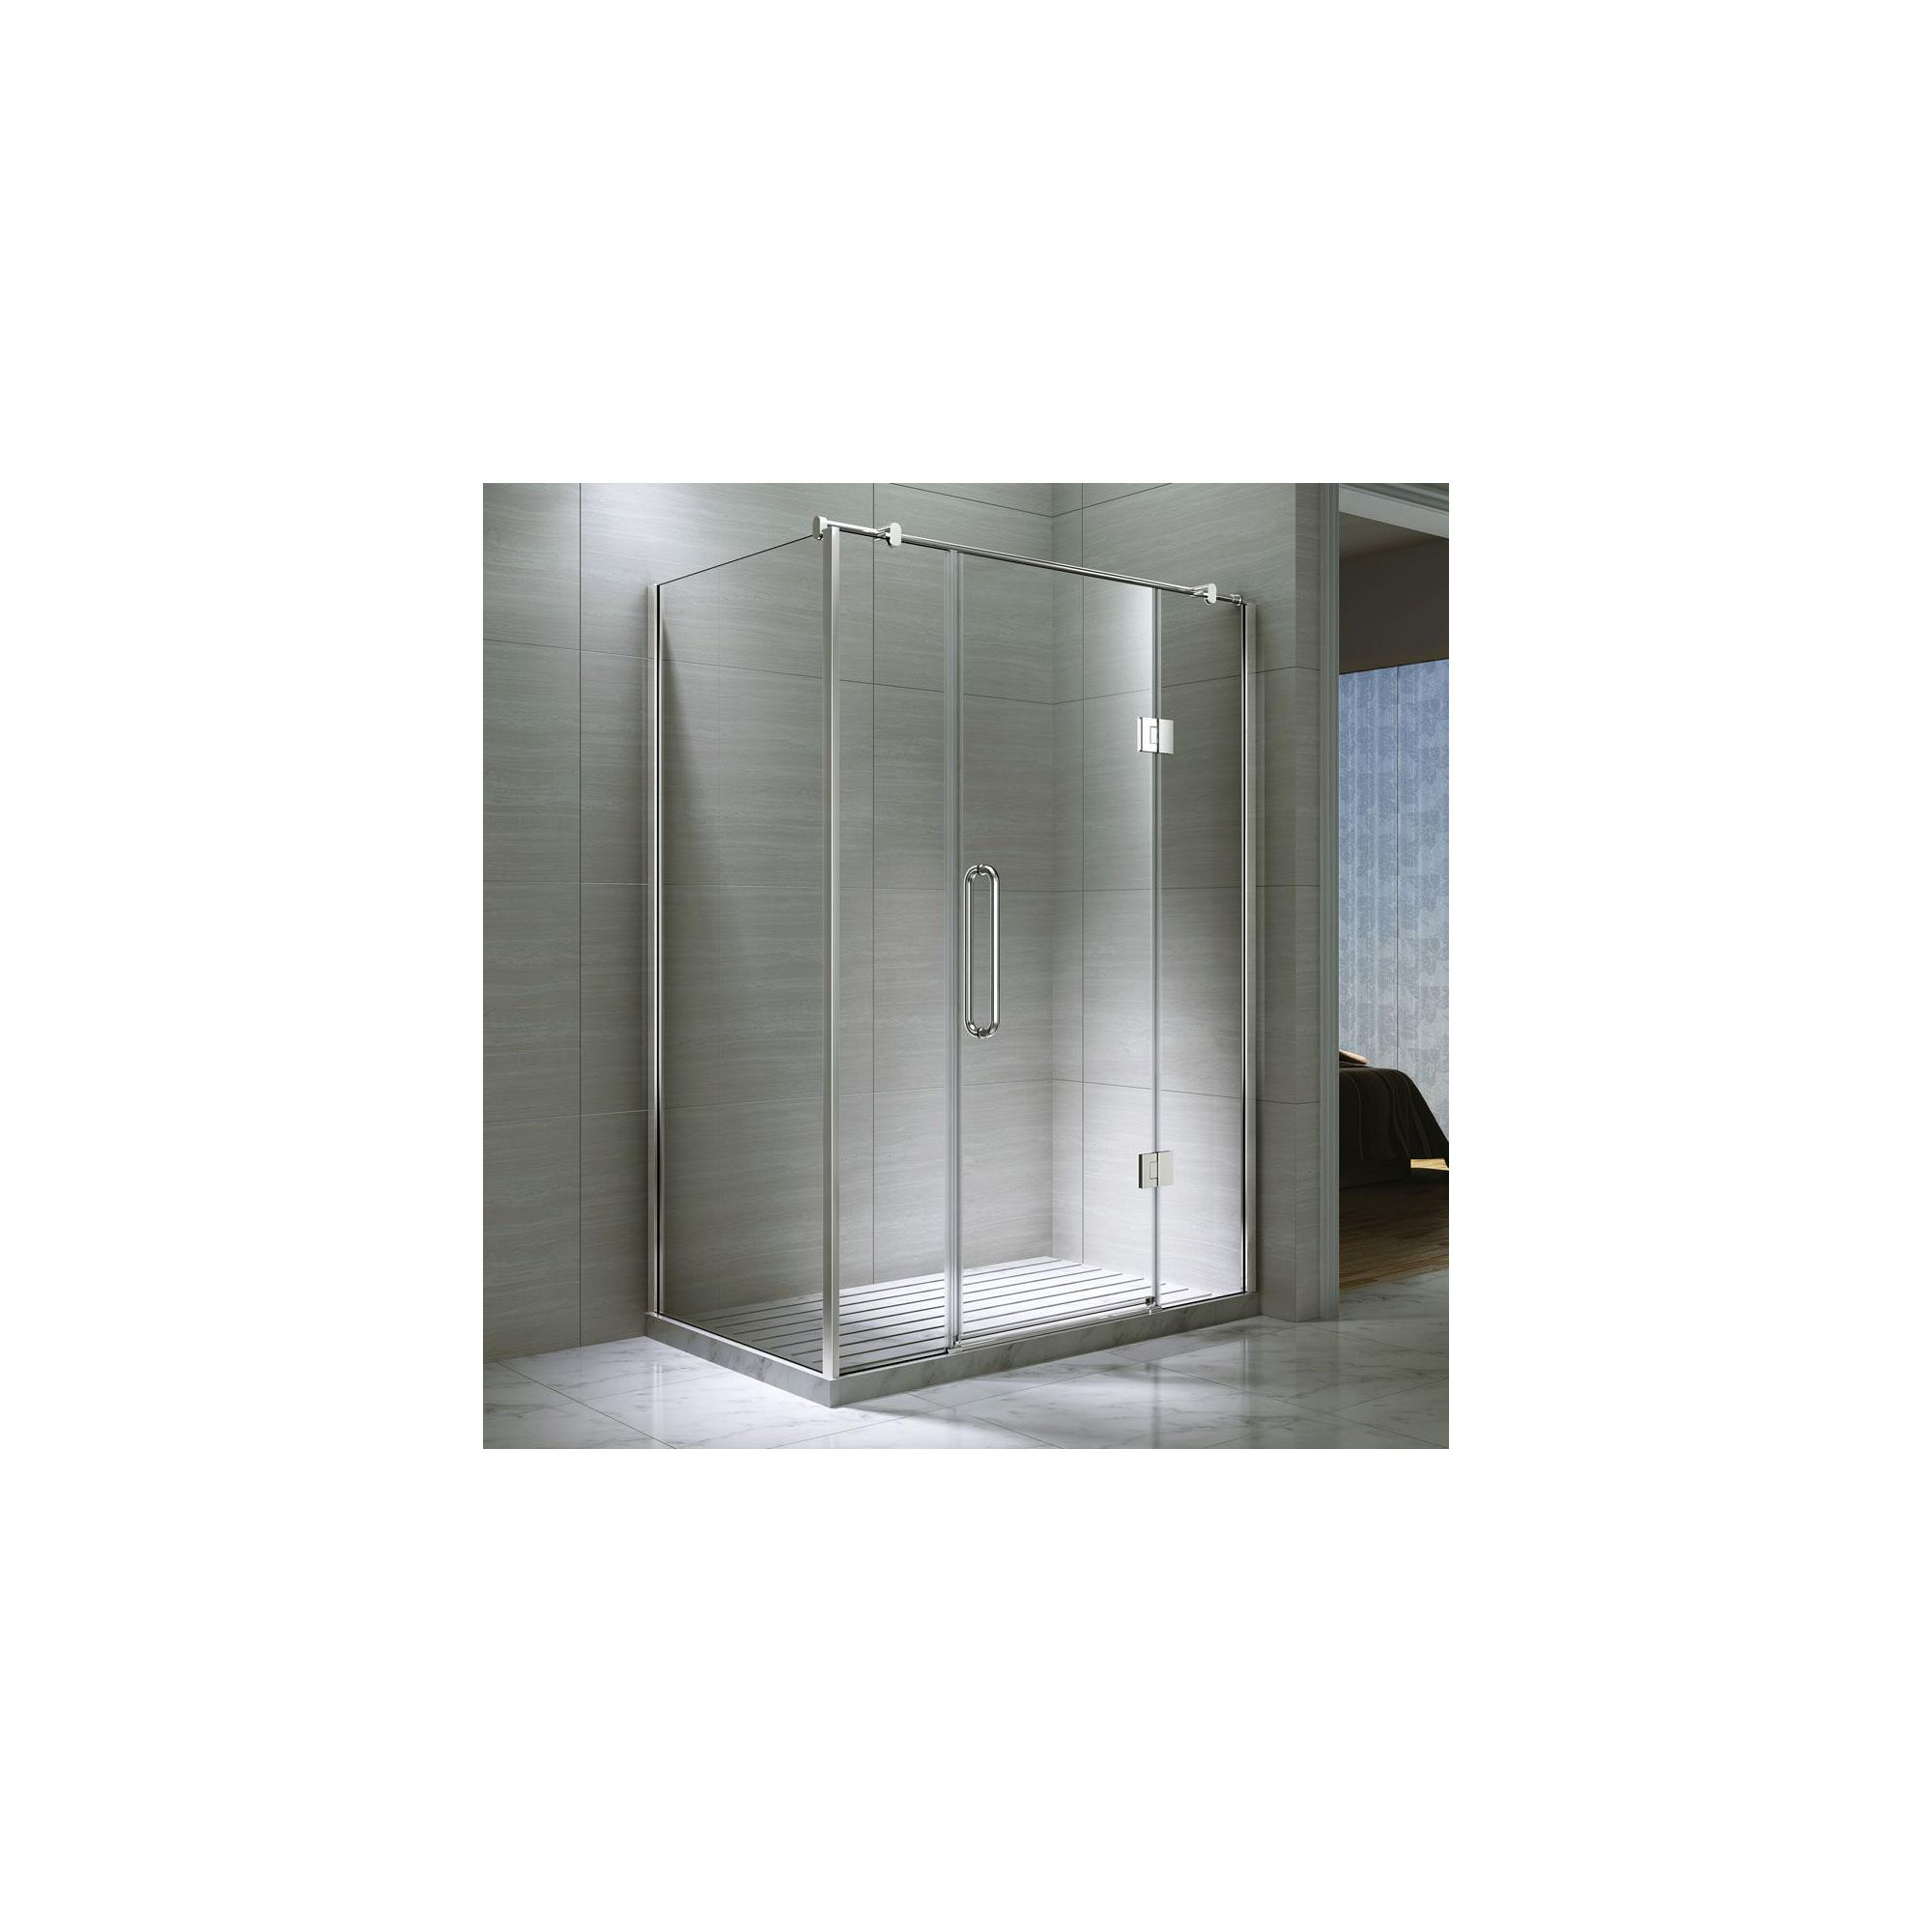 Desire Ten Double Inline Hinged Shower Door with Side Panel, 1600mm x 900mm, Semi-Frameless, 10mm Glass at Tesco Direct